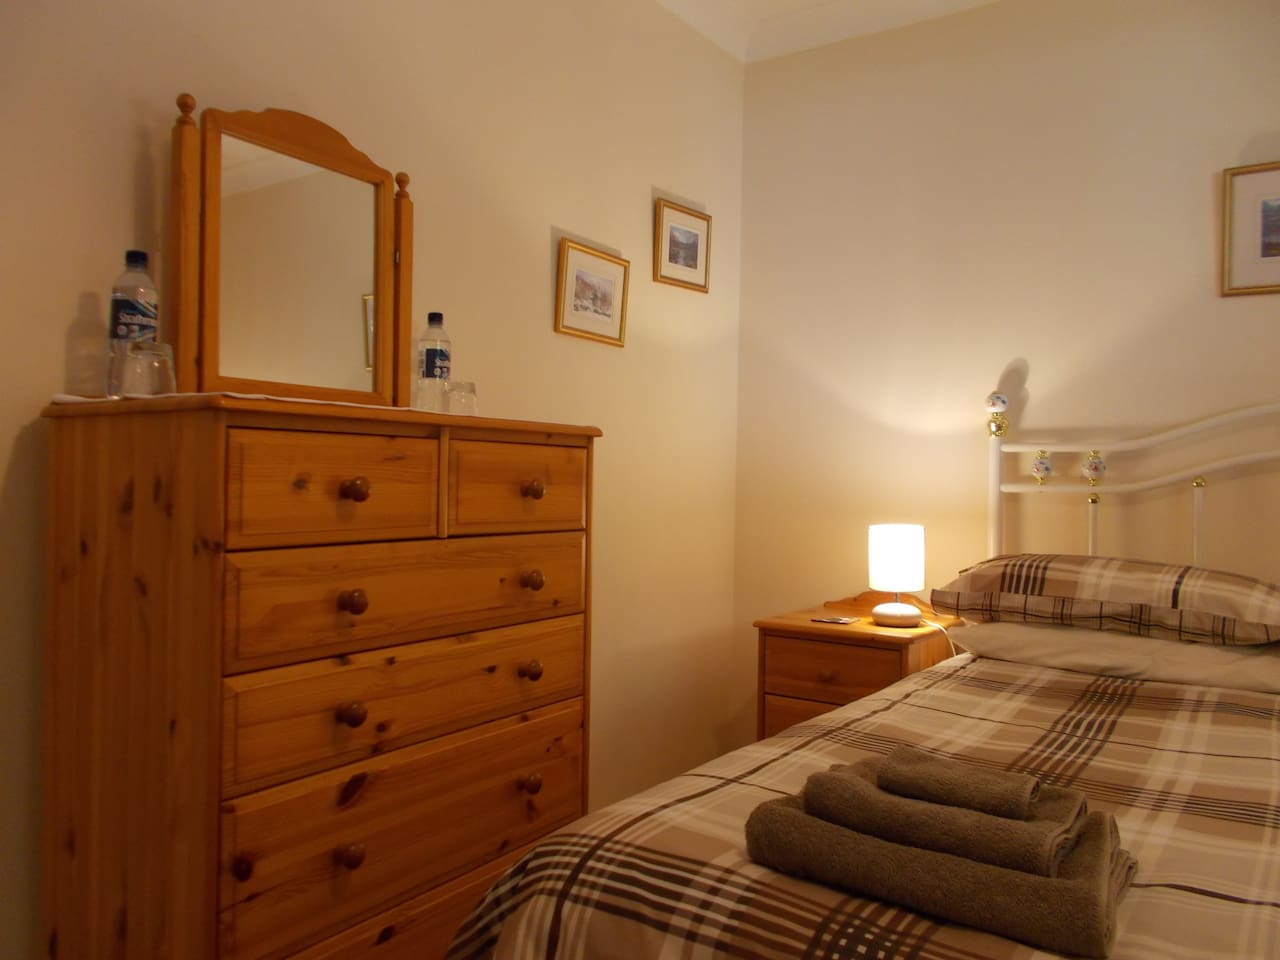 Our small downstairs double bedroom.